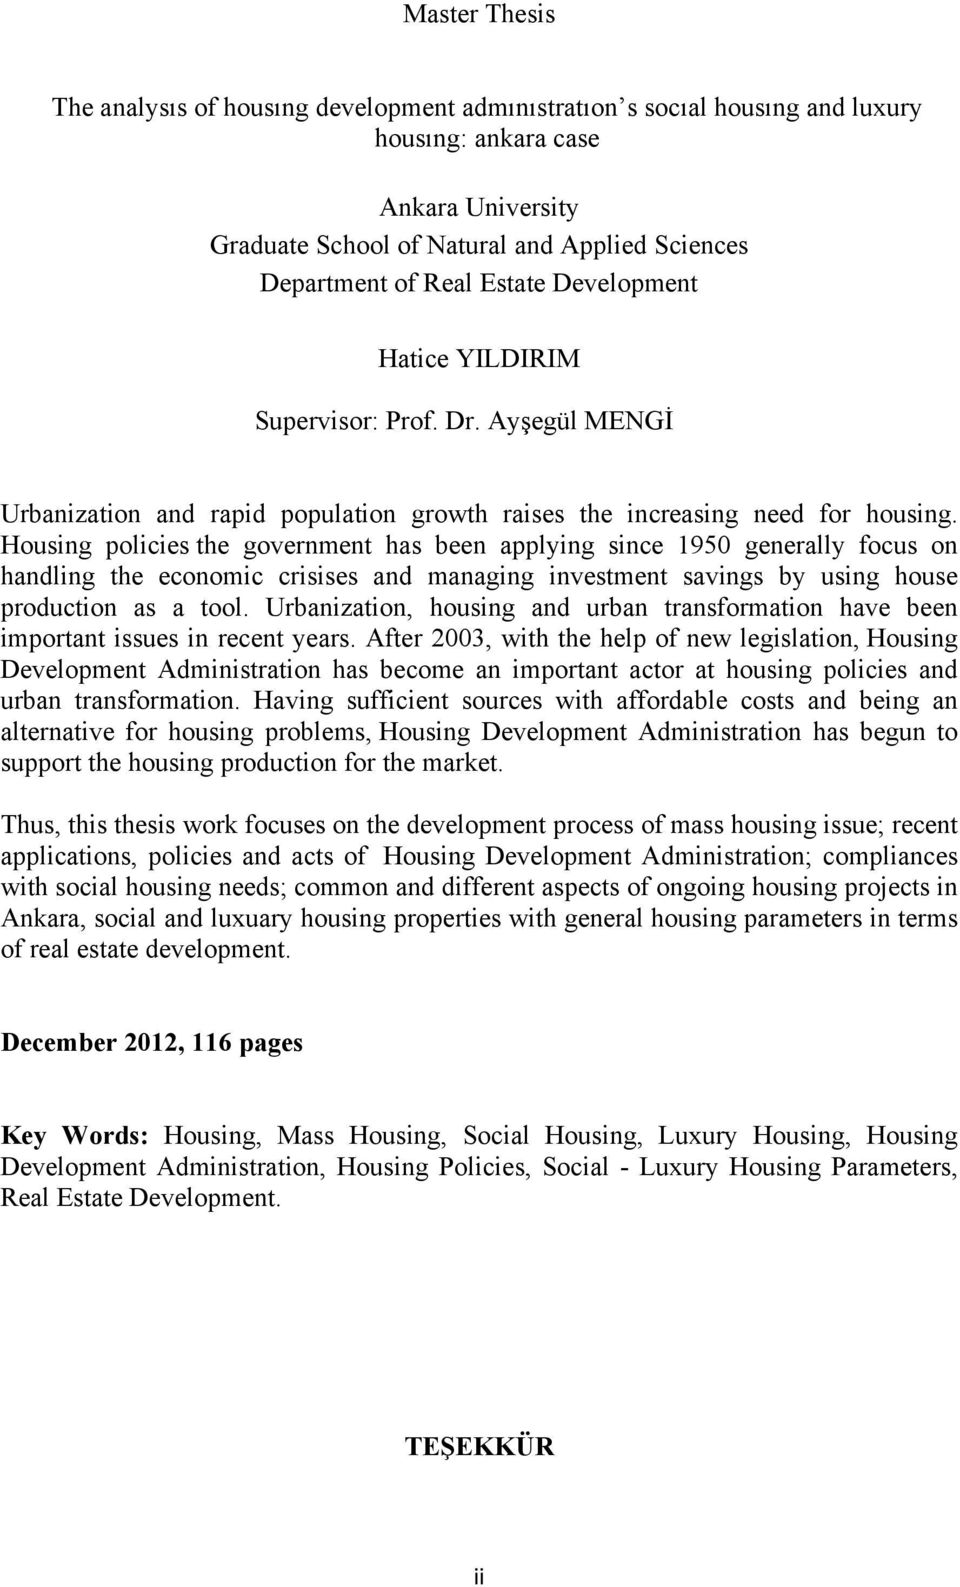 Housing policies the government has been applying since 1950 generally focus on handling the economic crisises and managing investment savings by using house production as a tool.